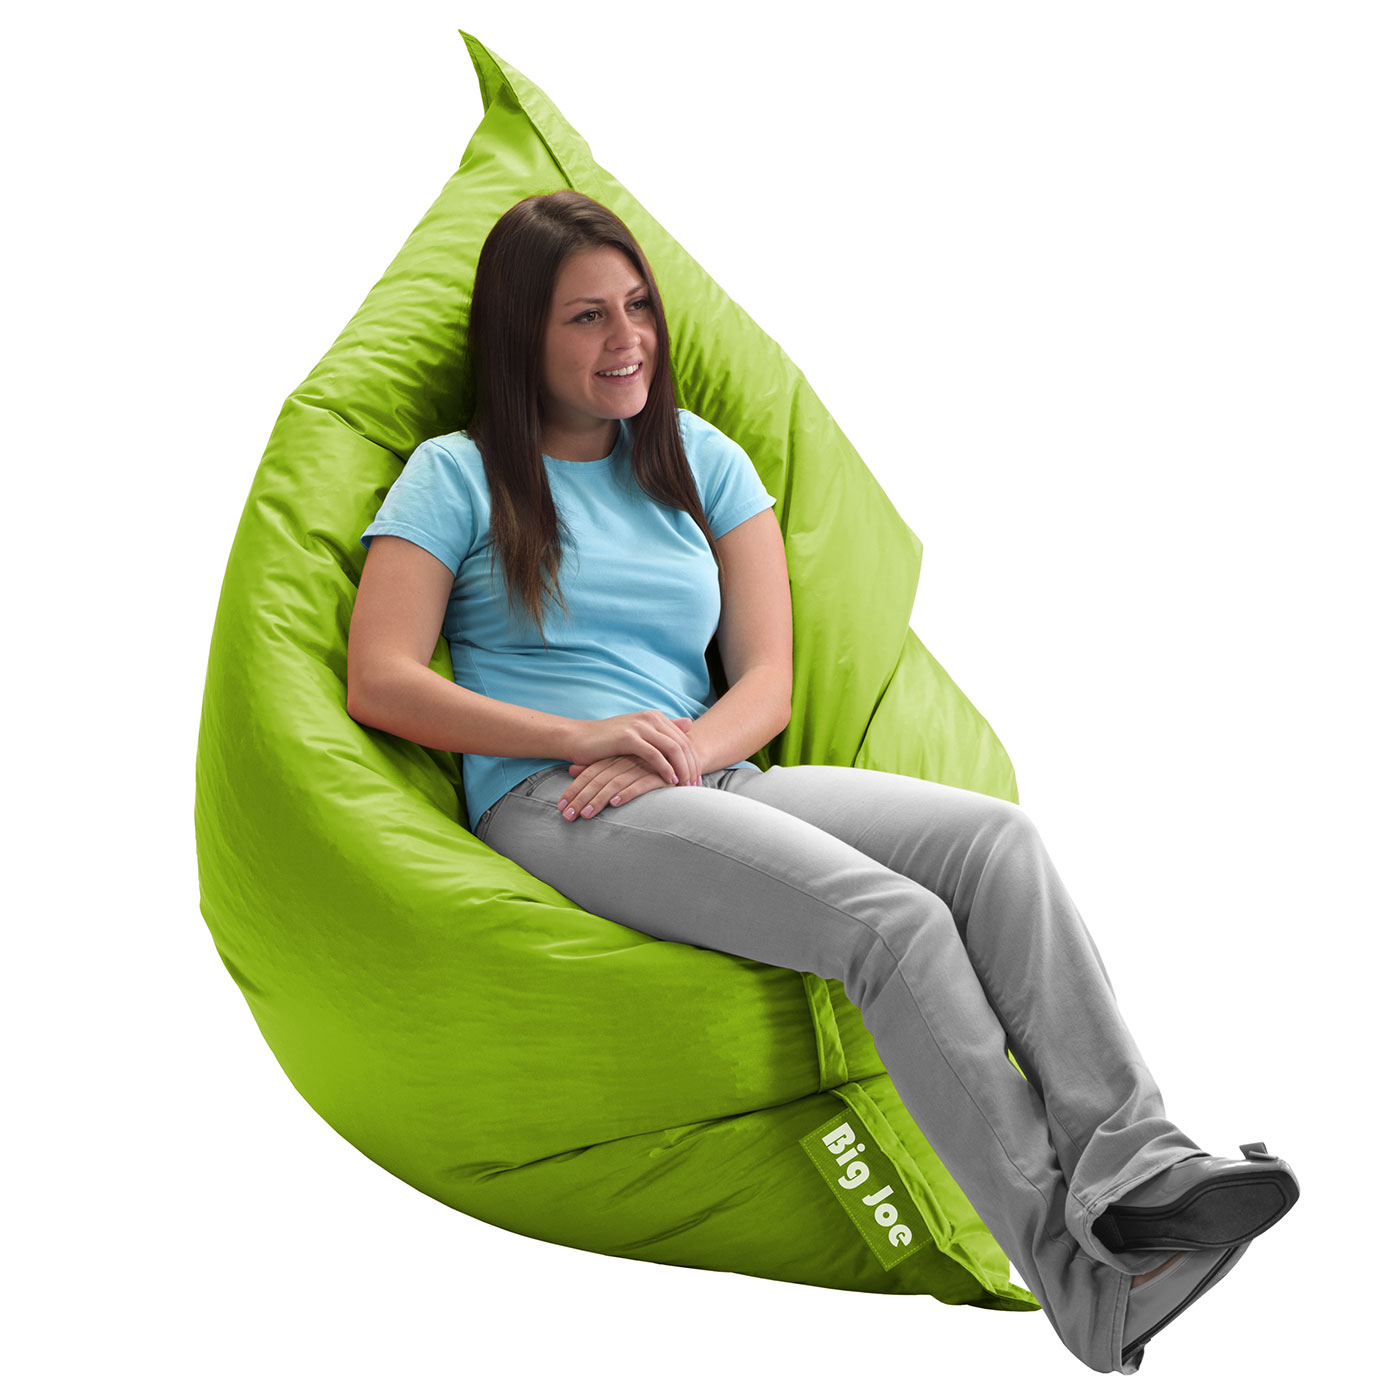 Gentil Comfort Research Big Joe Original SmartMax Bean Bag Chair In Spicy Lime  FREE SHIPPING